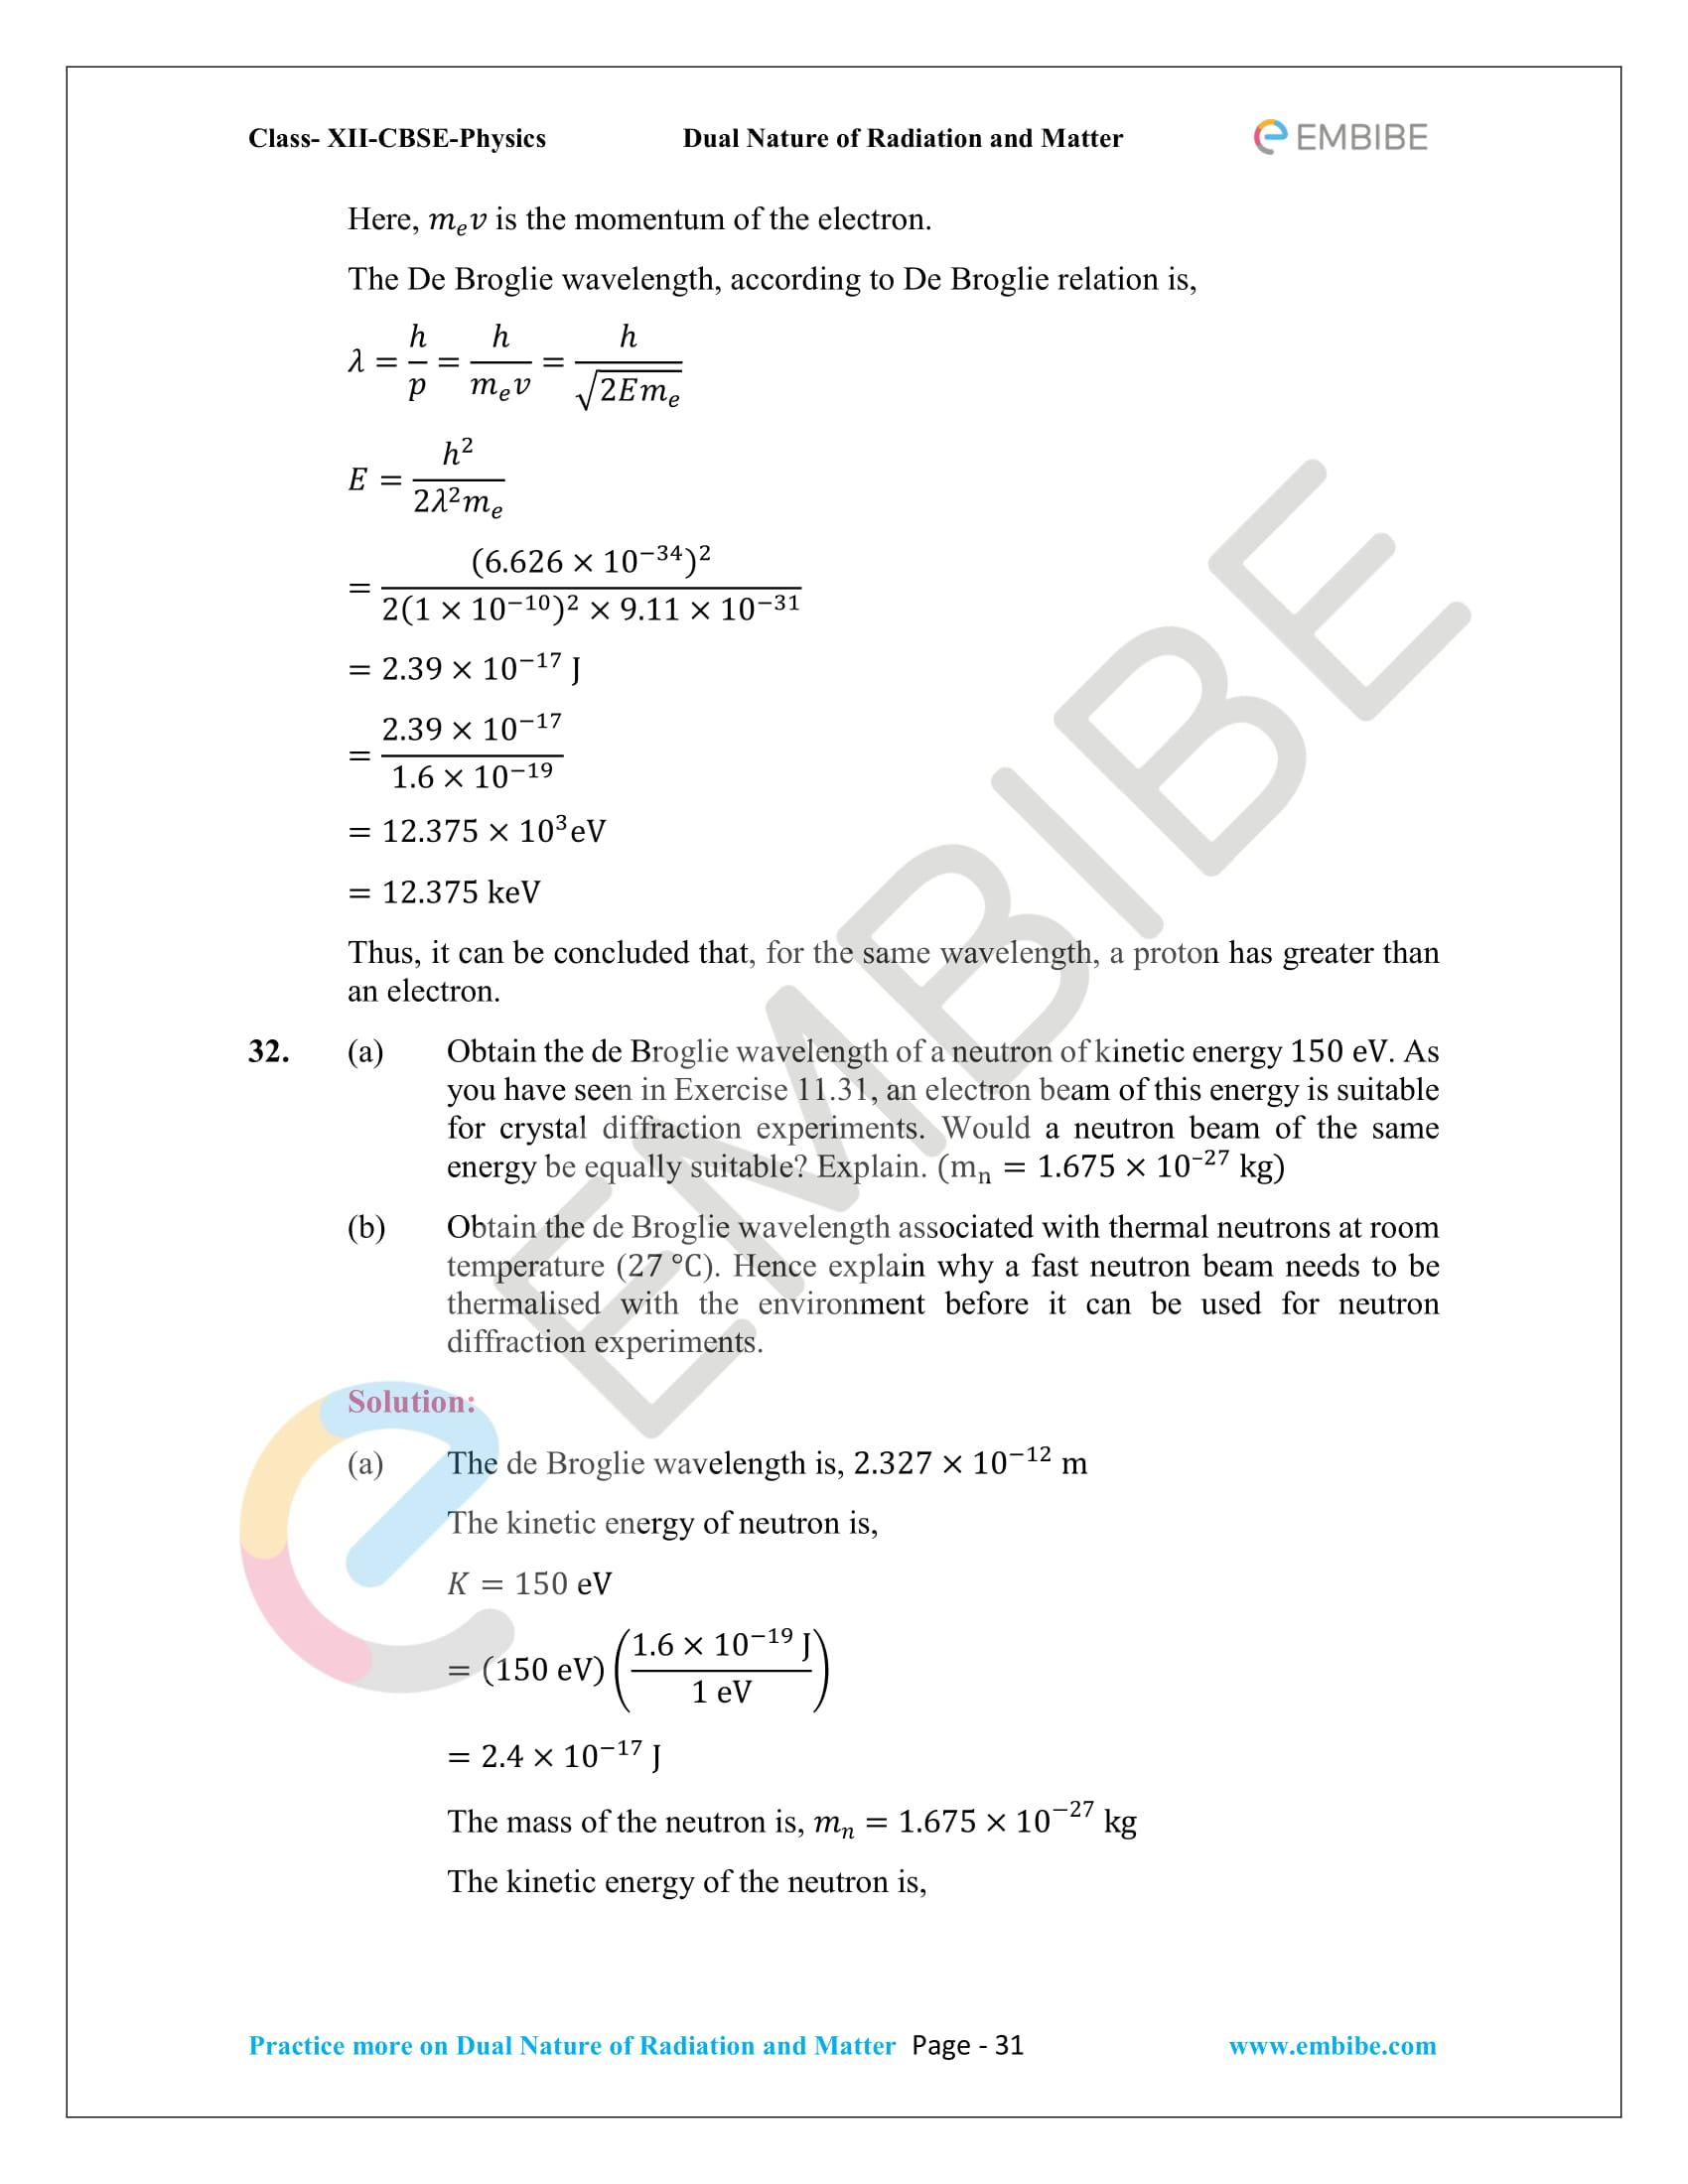 NCERT_Grade 12_Physics_Ch_11_Dual Nature of Radiation and Matter-31